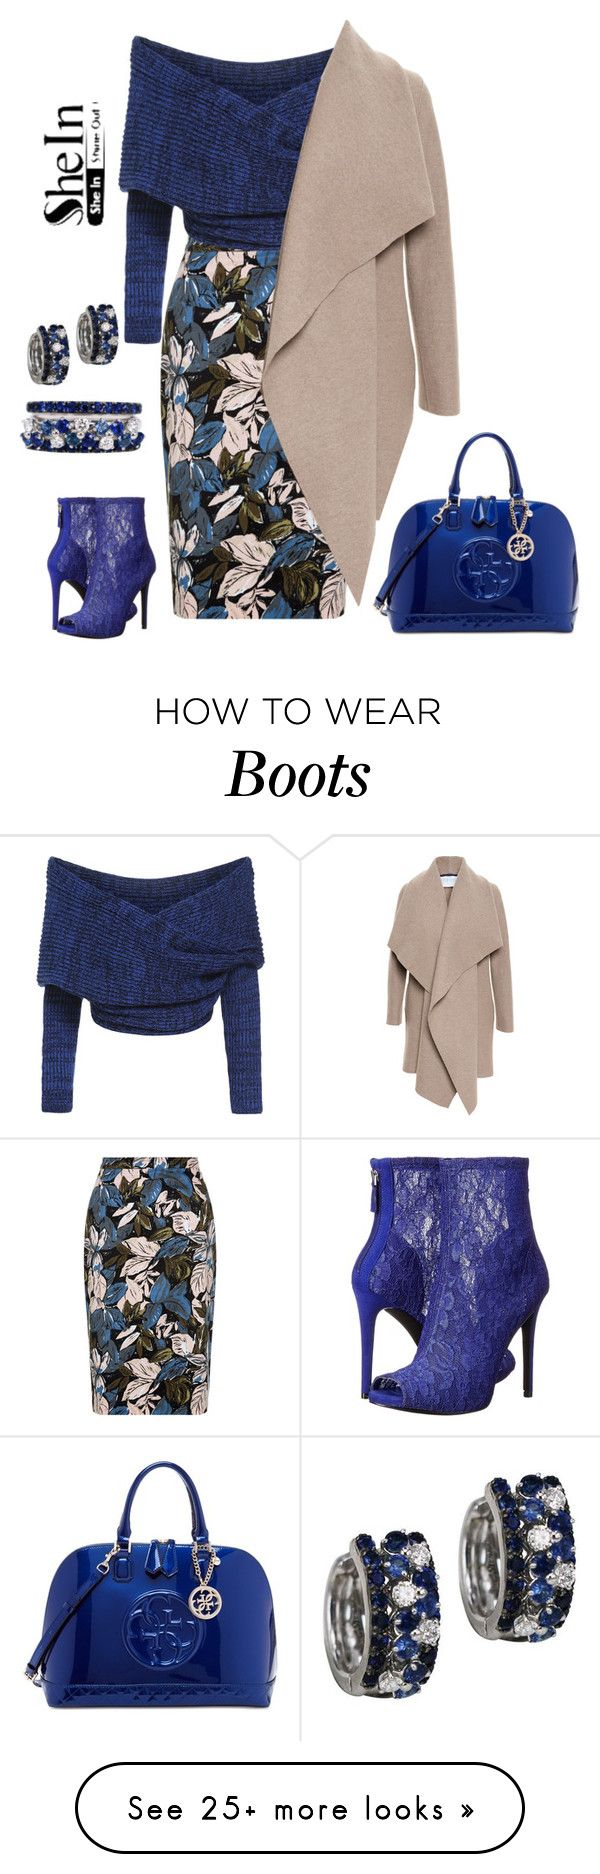 """""""I love blue"""" by longopaola on Polyvore featuring GUESS and Harris Wharf London"""